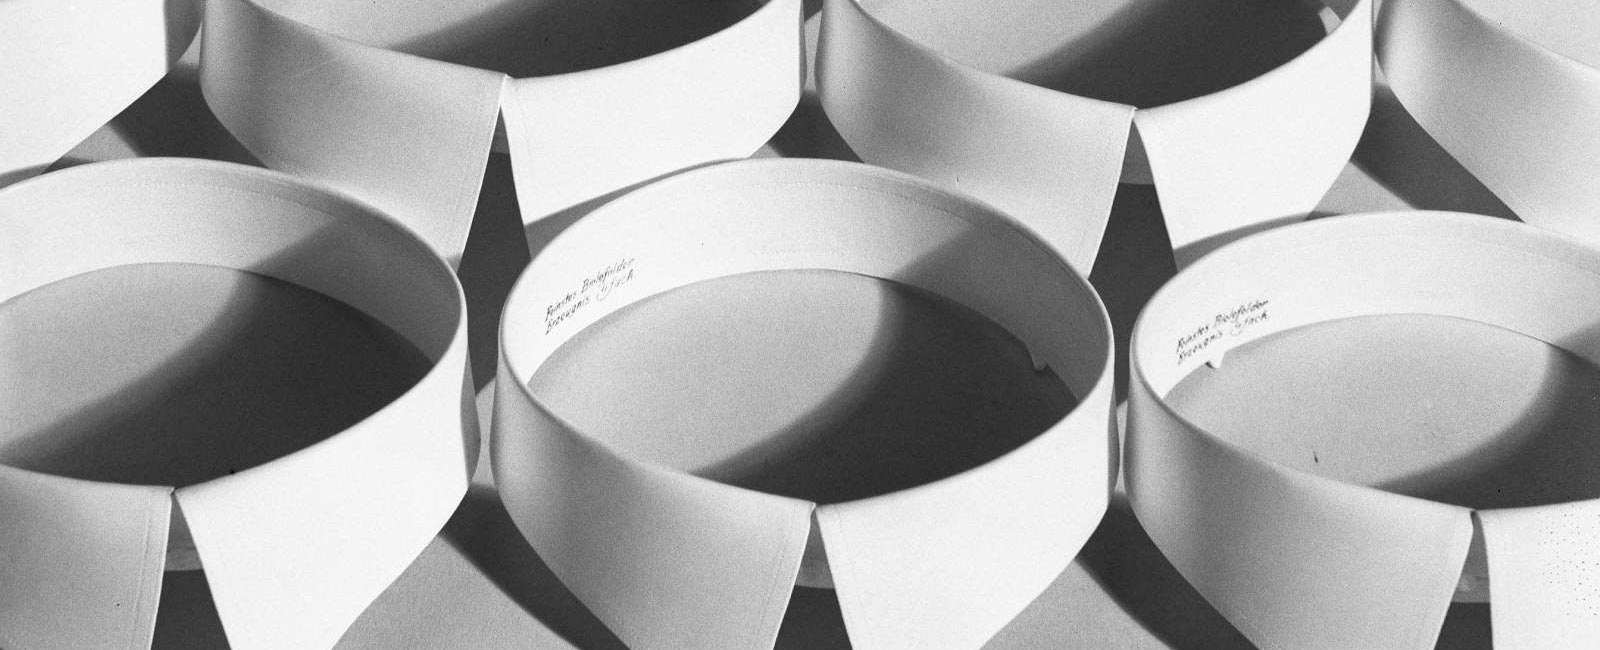 Collection Regard | Hein Gorny – New Objectivity And Industry